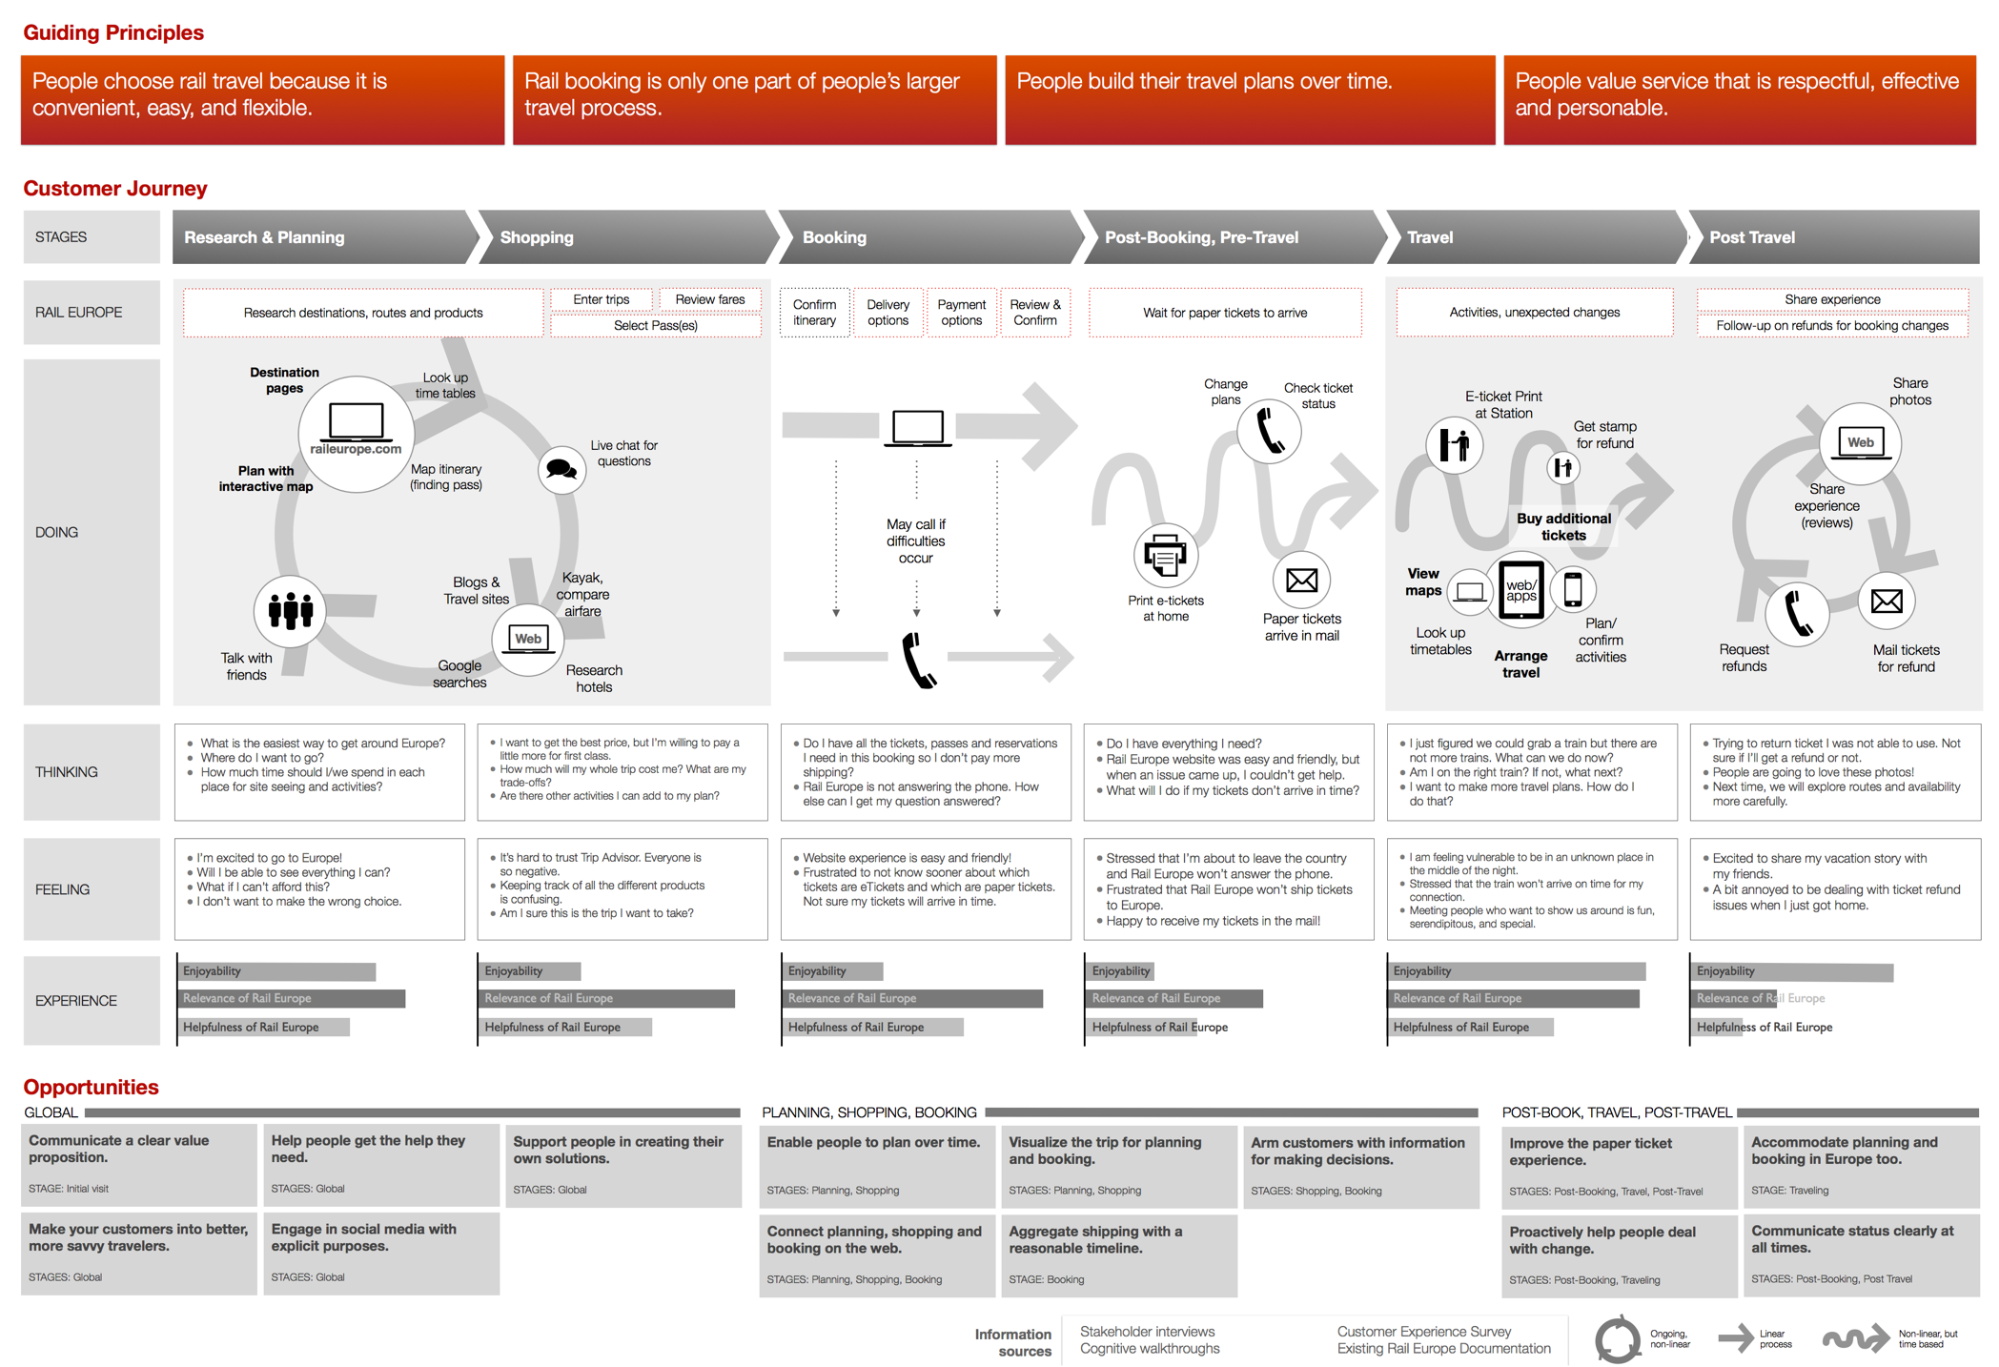 Customer journey maps are part of the UX design process.